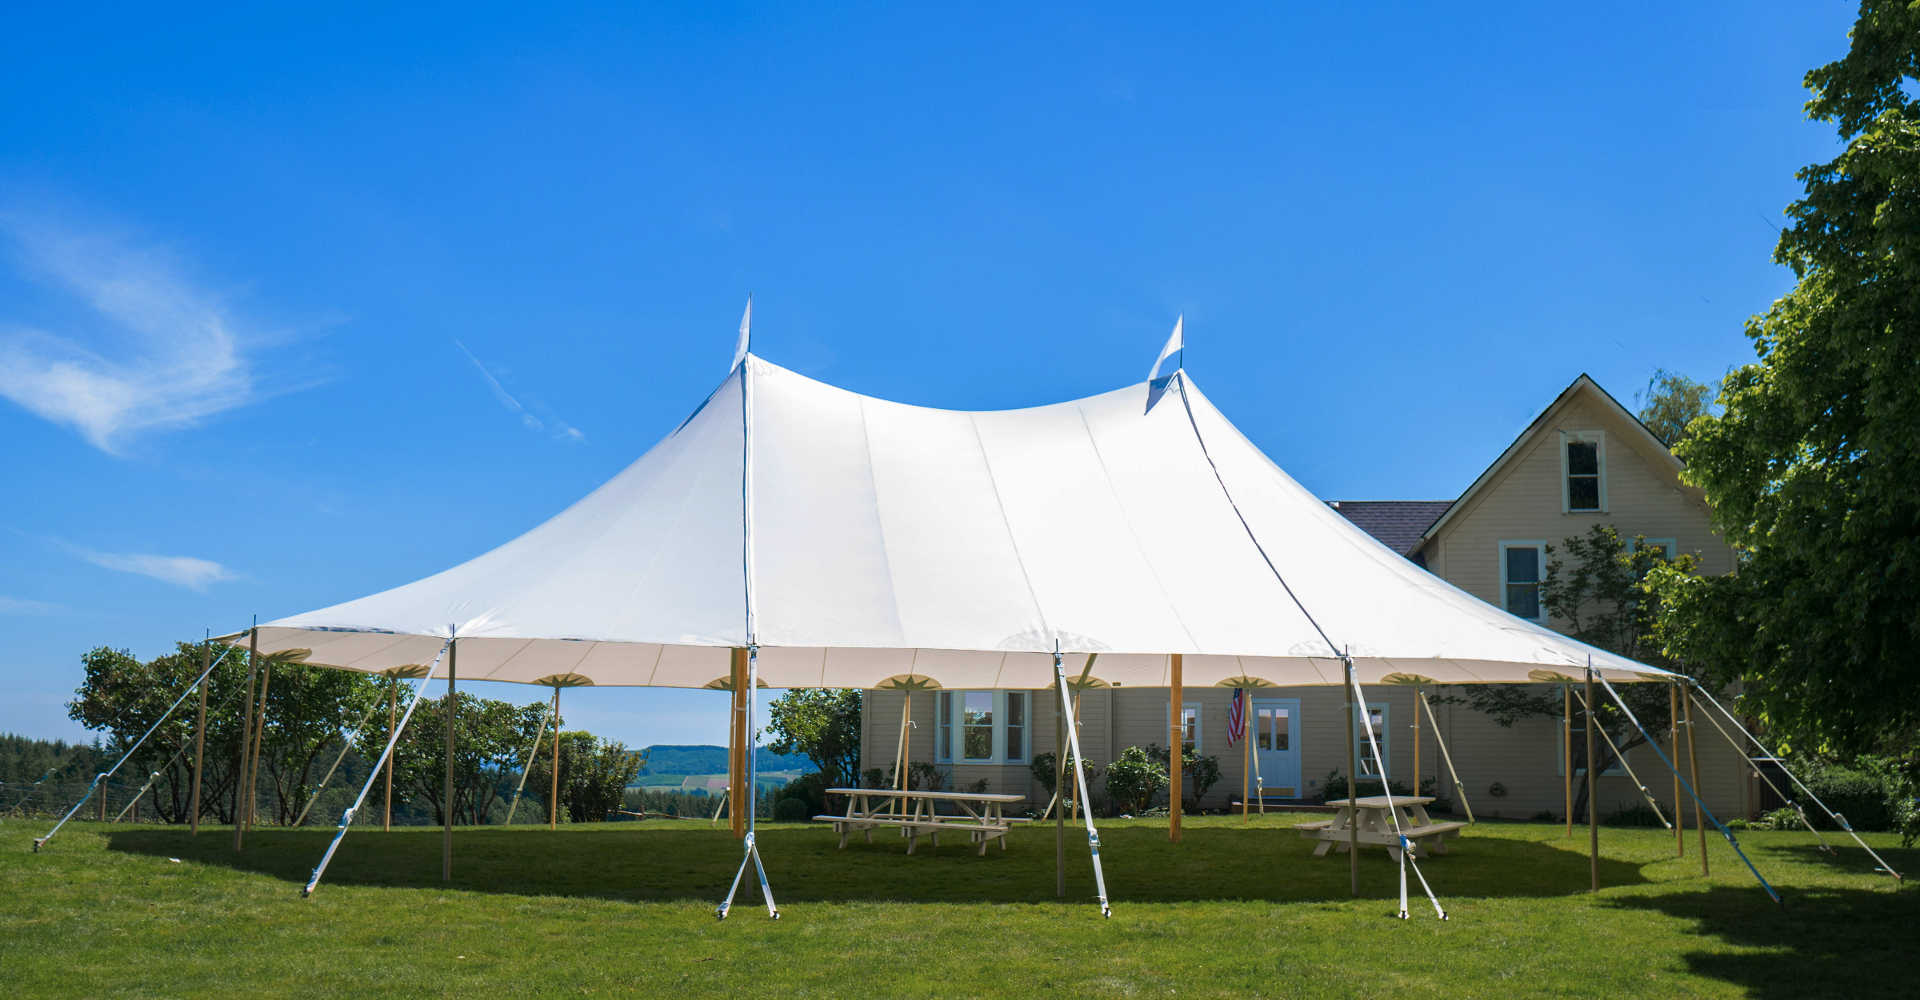 Special Event & Tent Rentals in the Portland Metro area